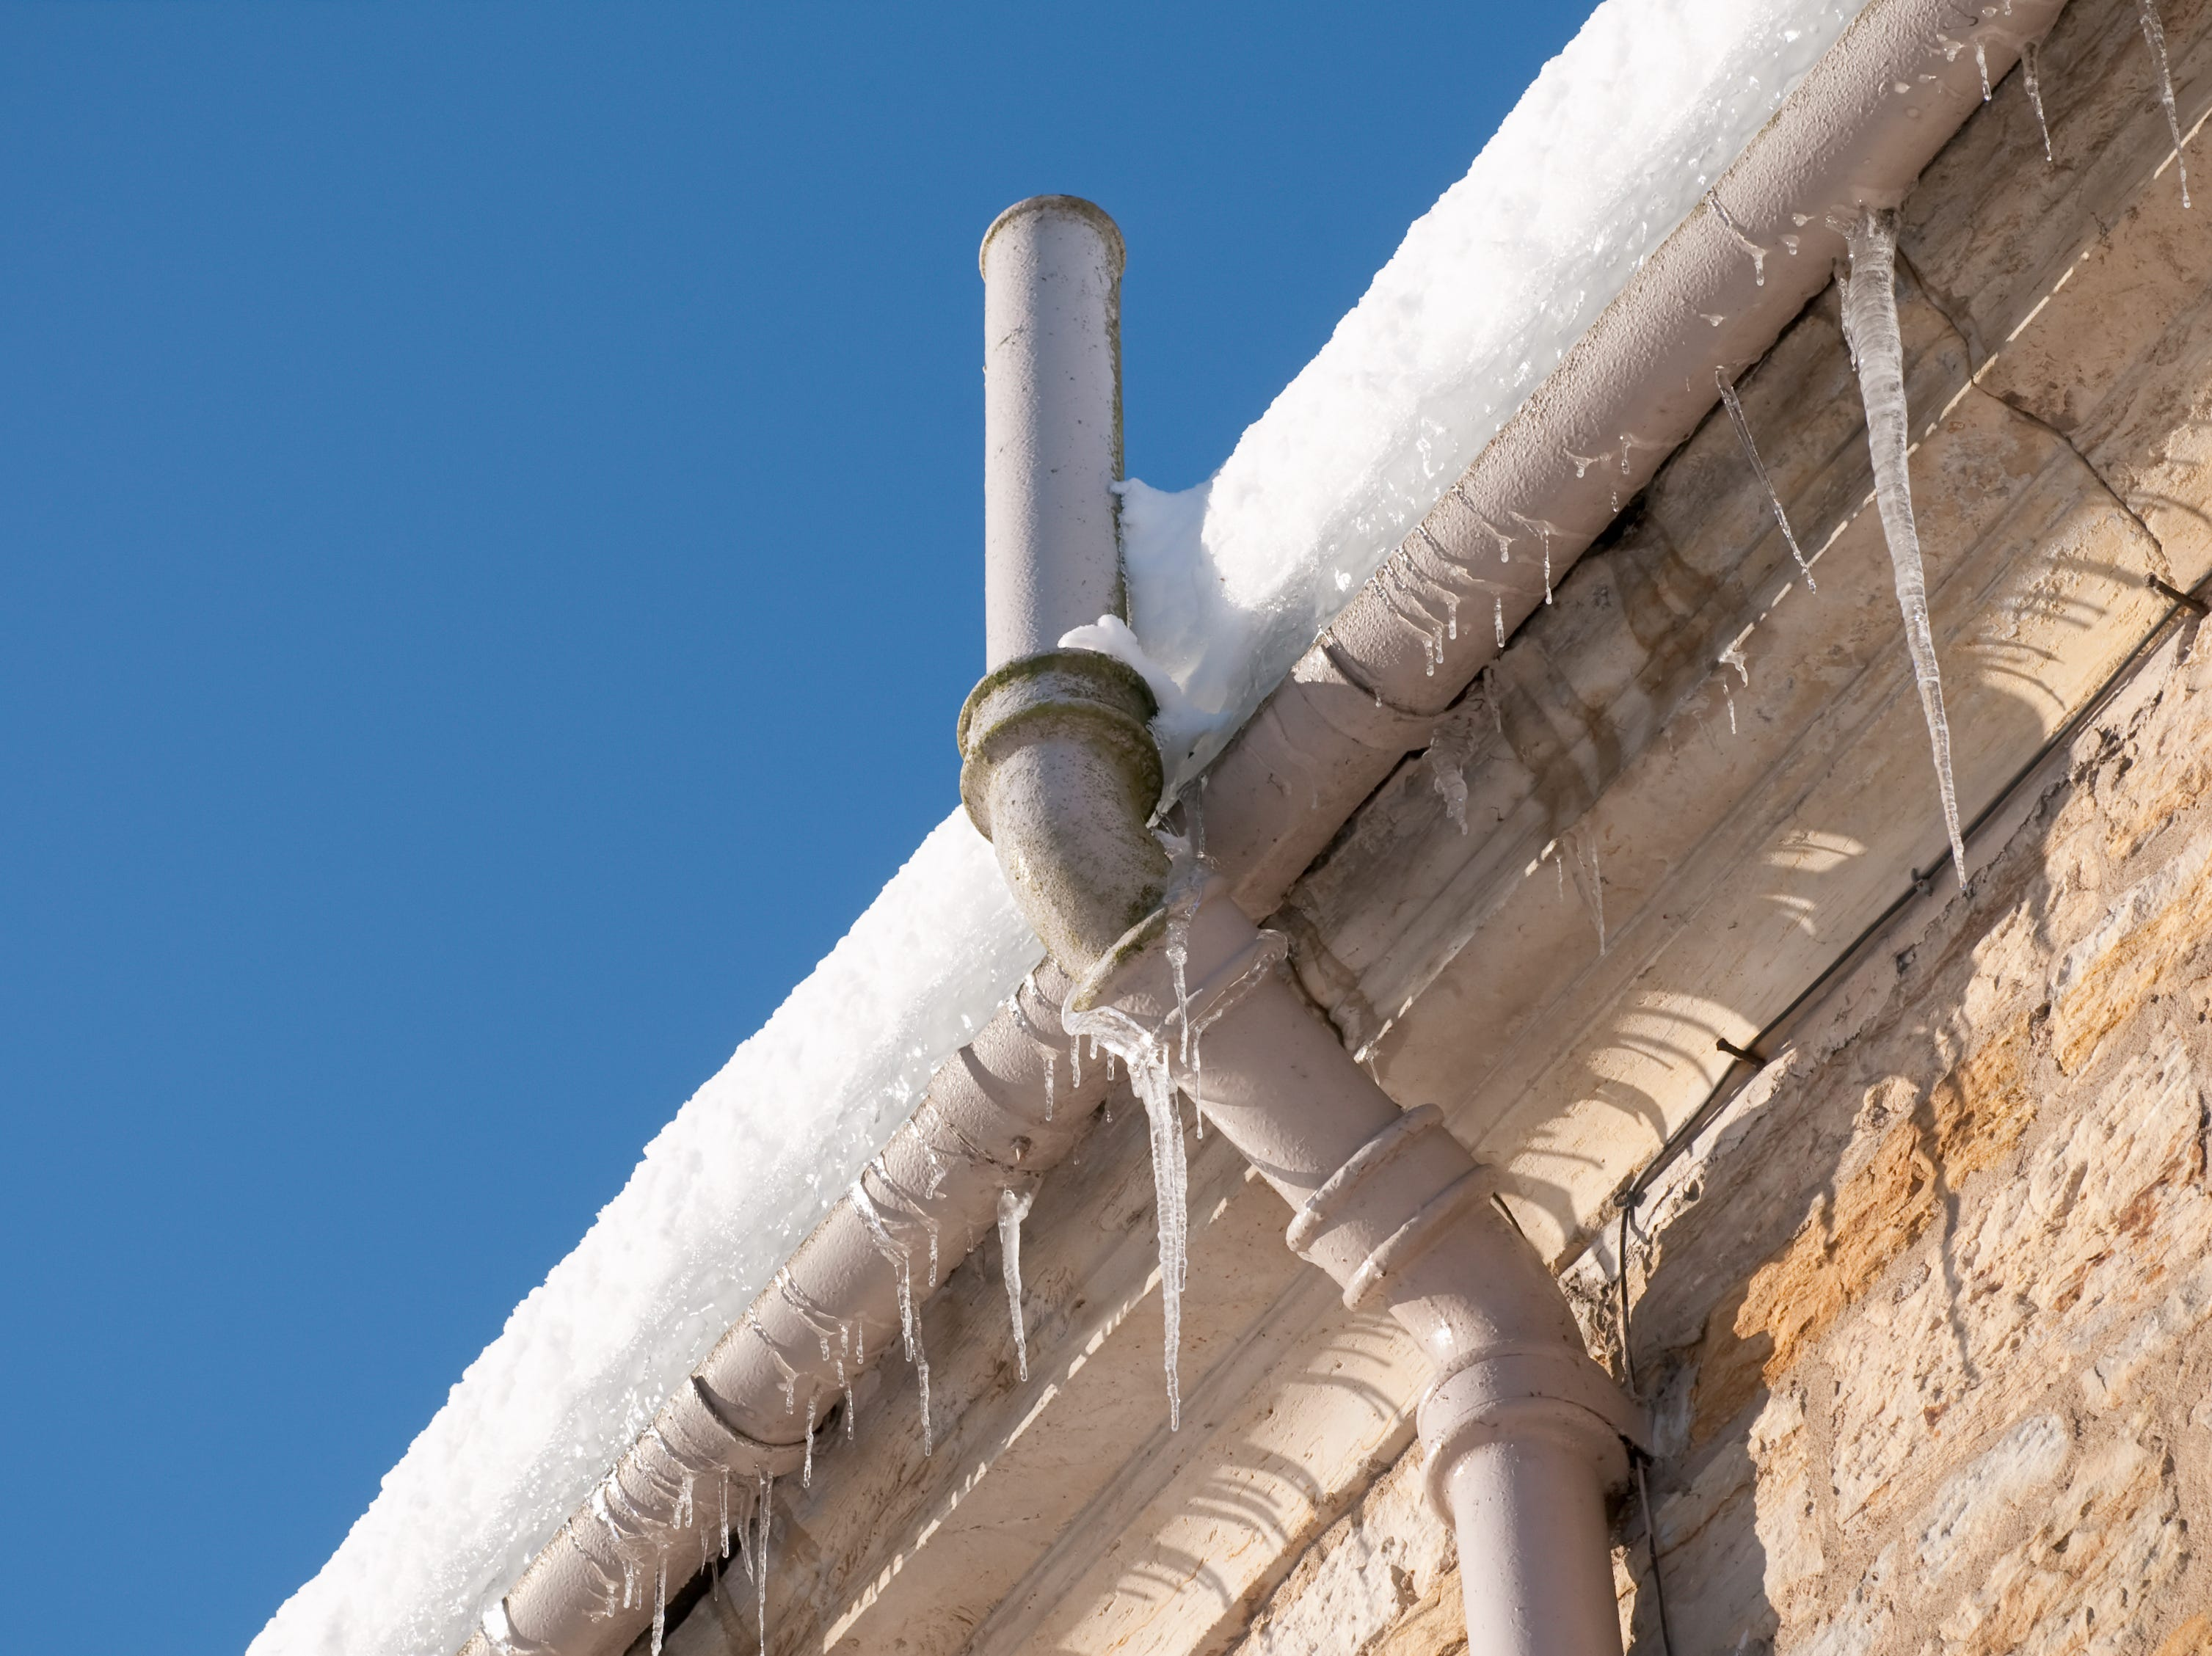 Frozen pipes: How to prevent pipes from freezing, thaw frozen pipes